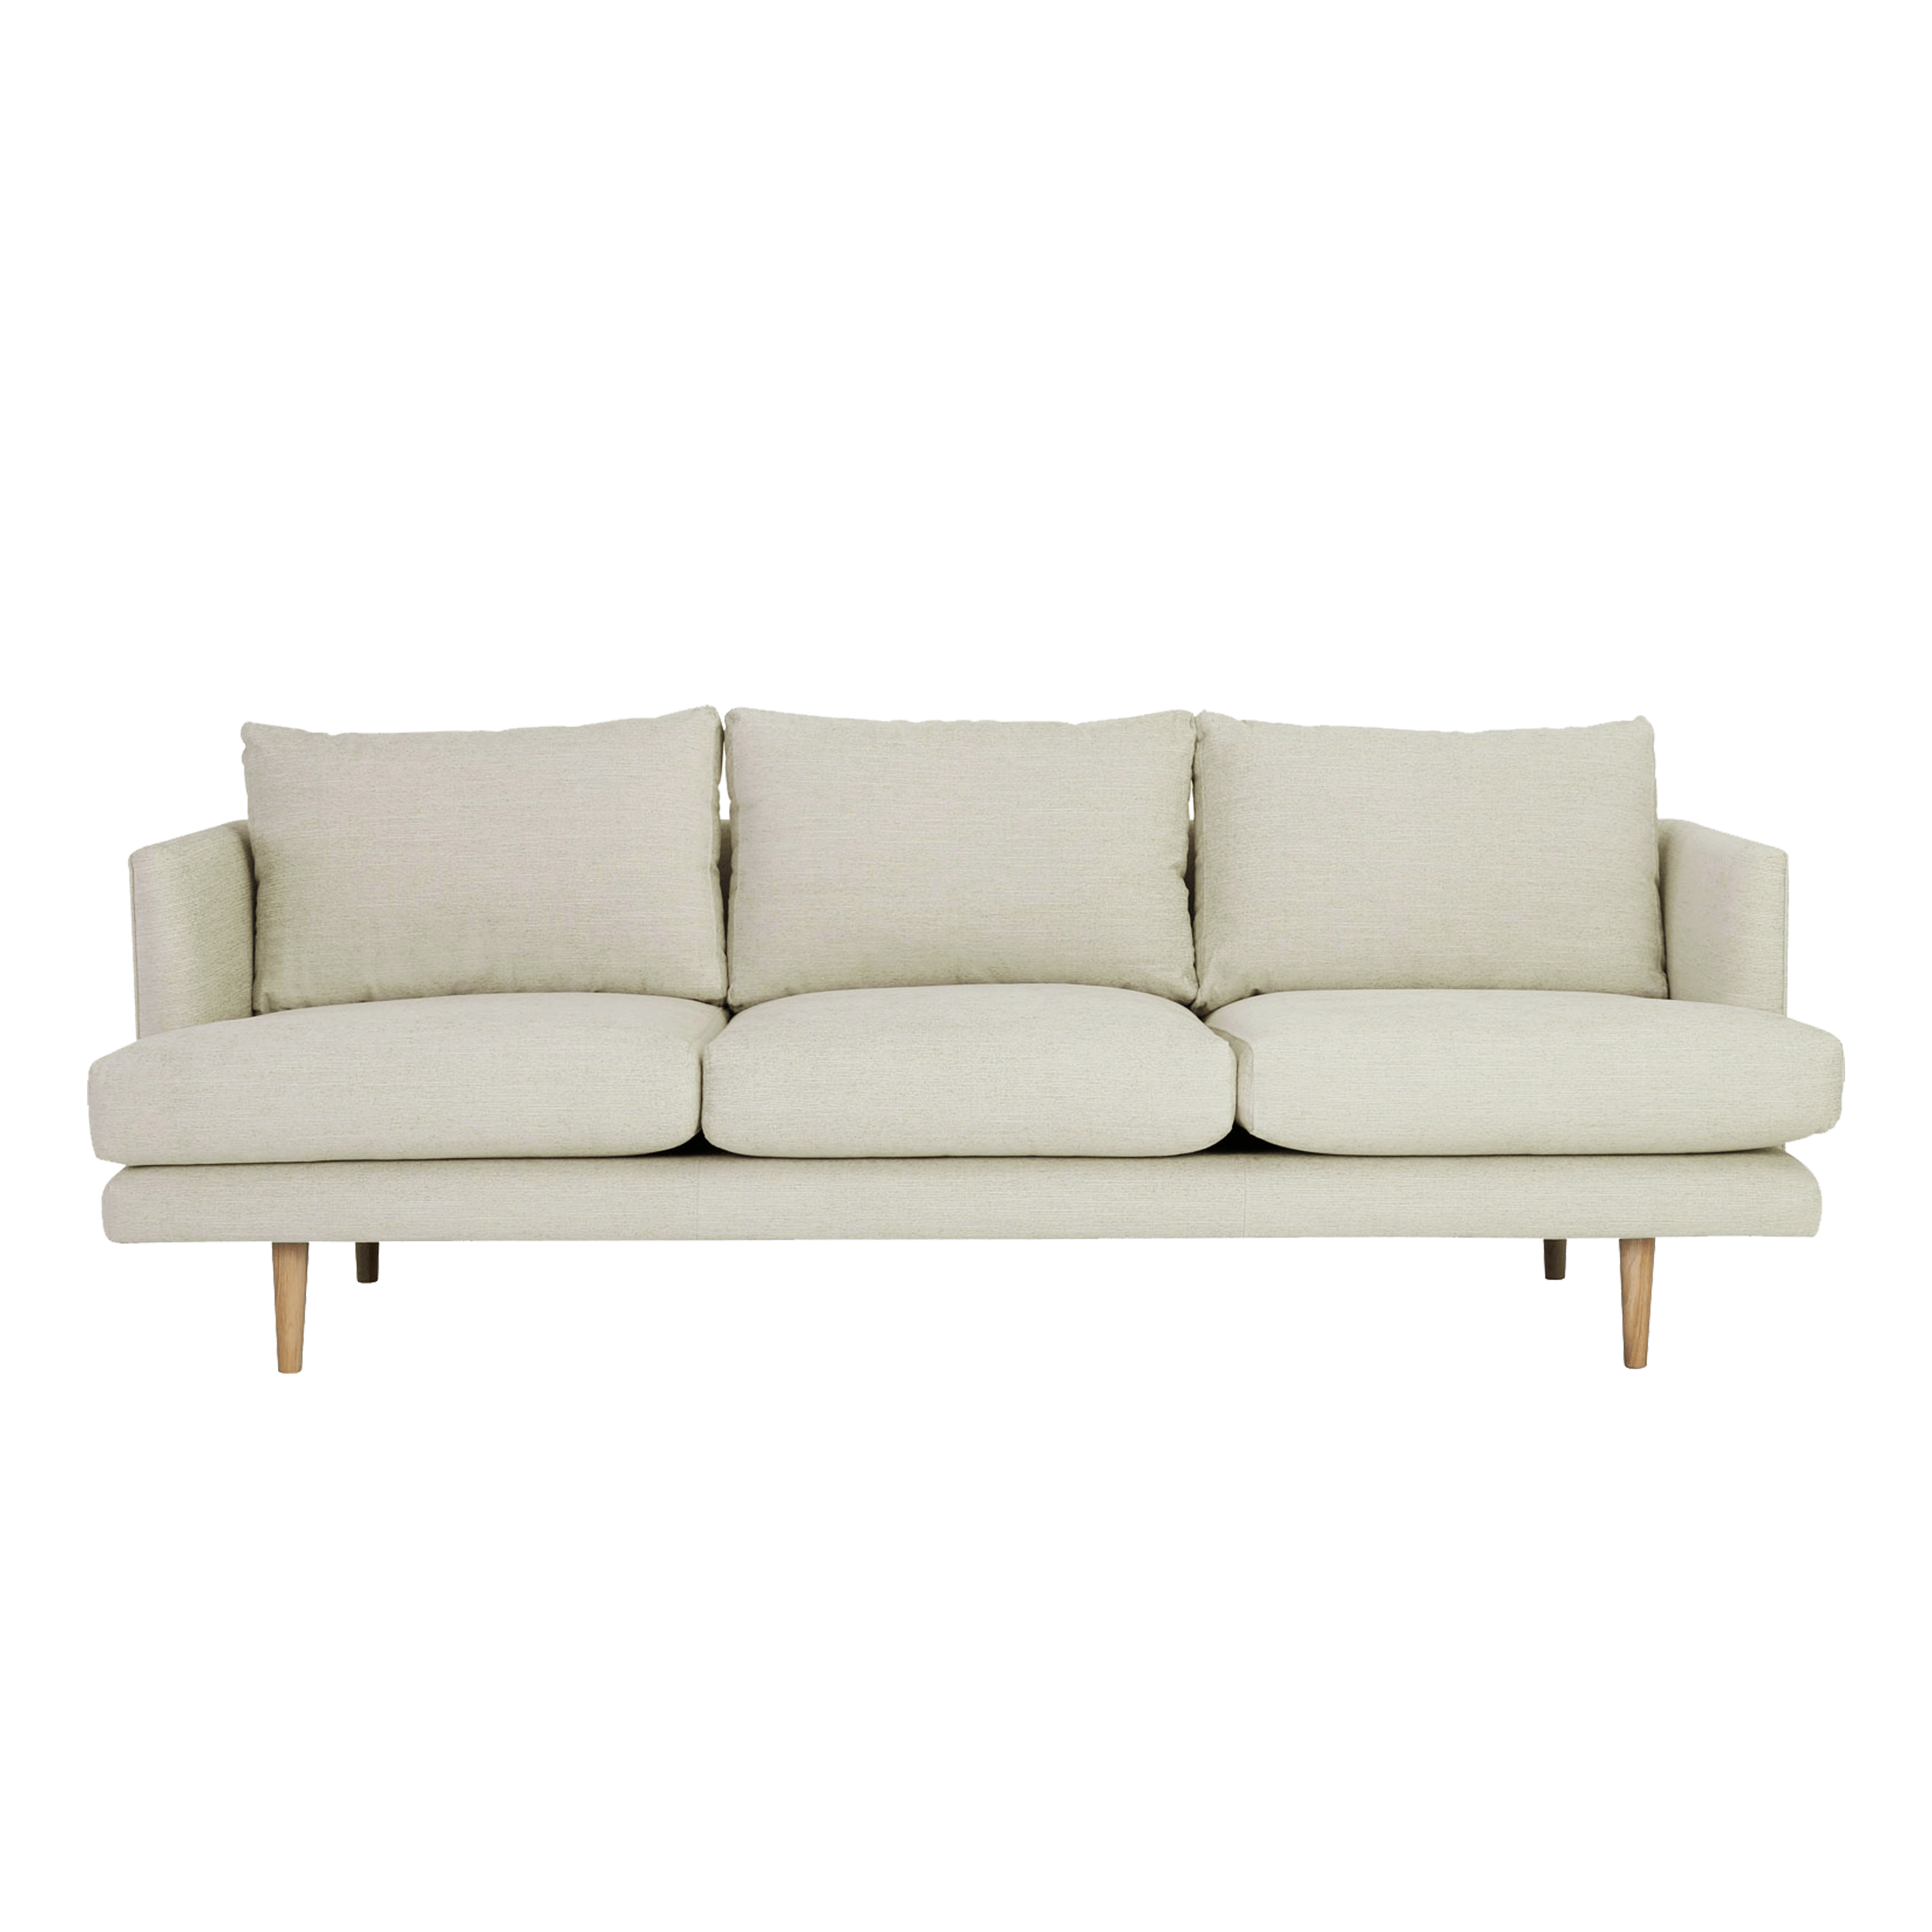 next quentin sofa bed review 2 piece covers buy 3 seater sofas online in singapore hipvan duster almond image 1